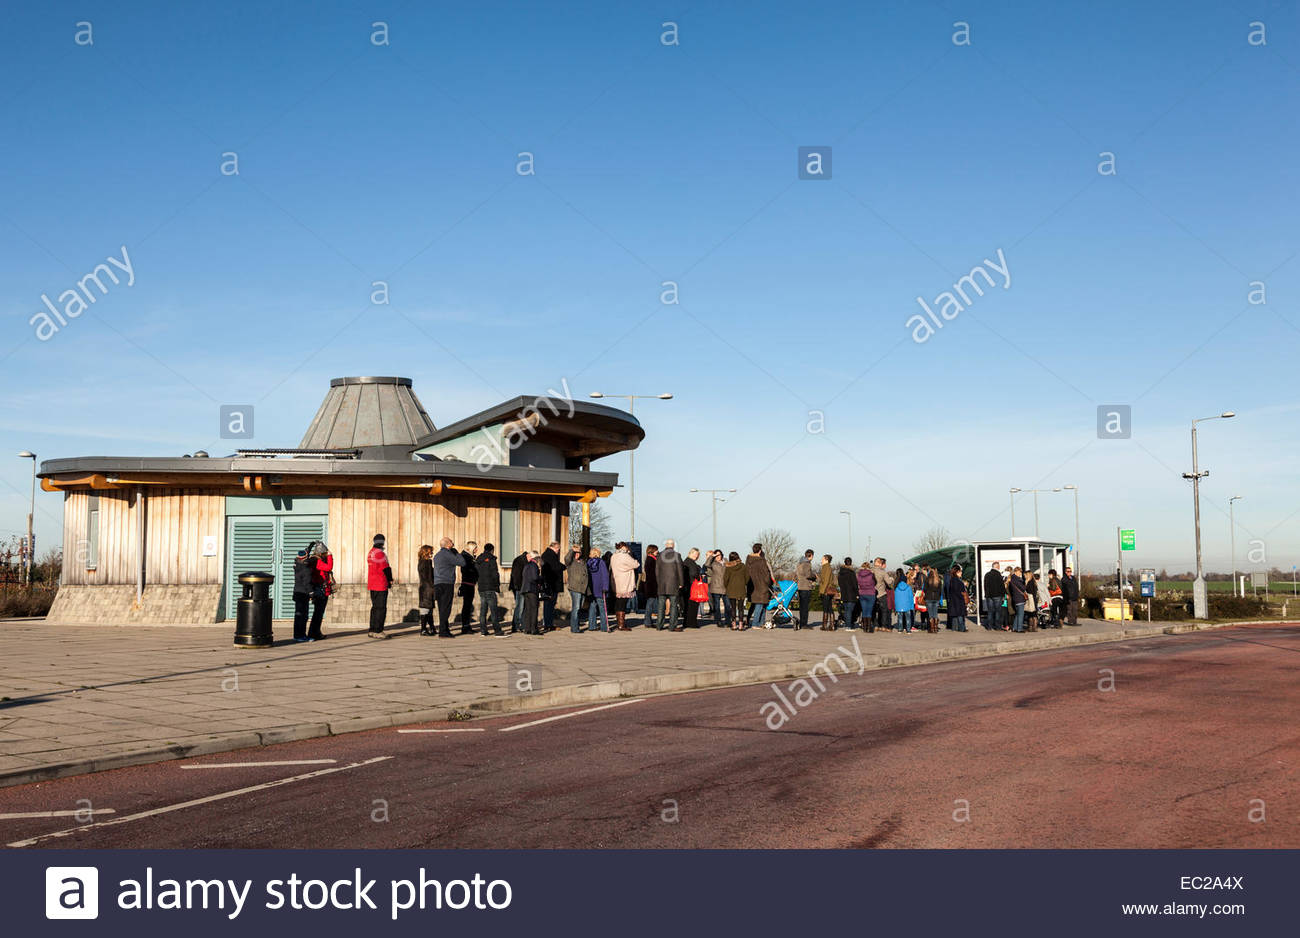 Passengers queueing for a bus at Milton Park and Ride, Cambridge, UK Stock Photo